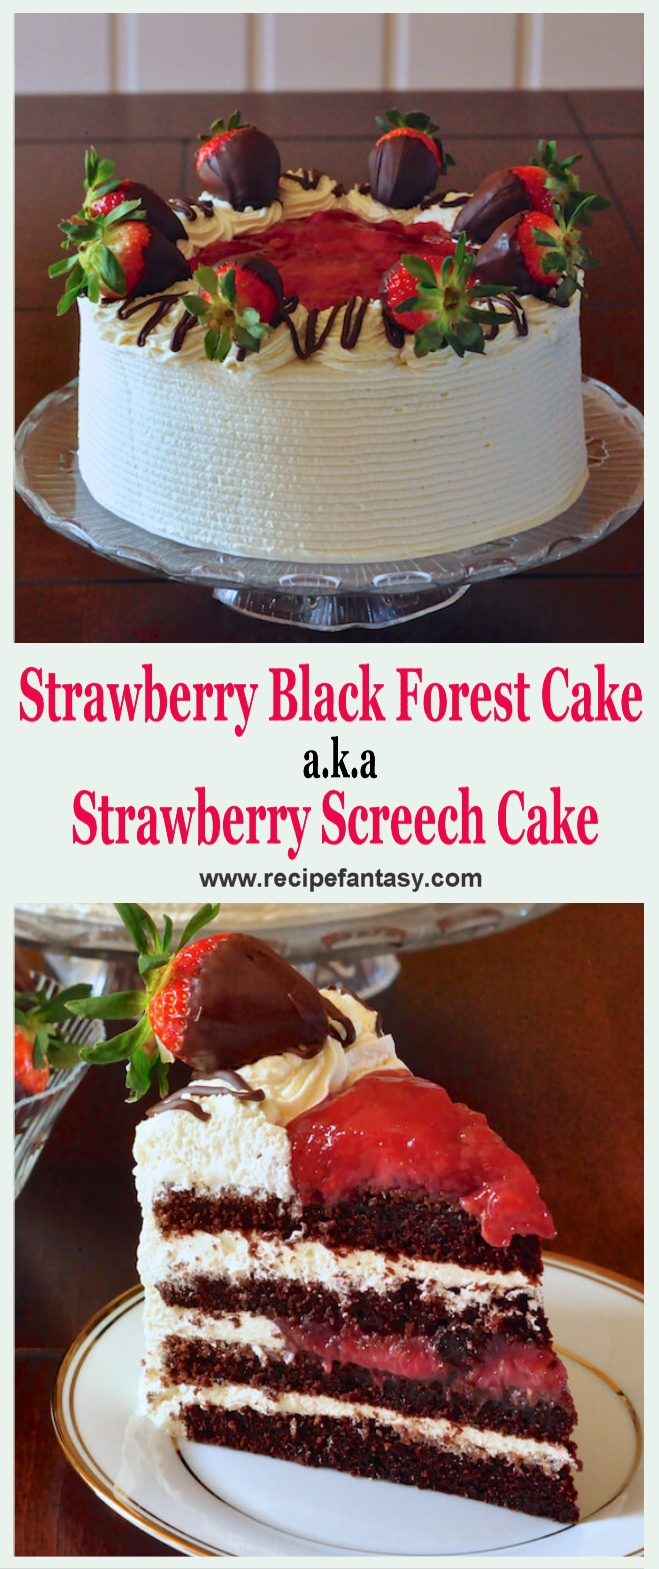 Strawberry Black Forest Cake a.k.a Strawberry Screech Cake